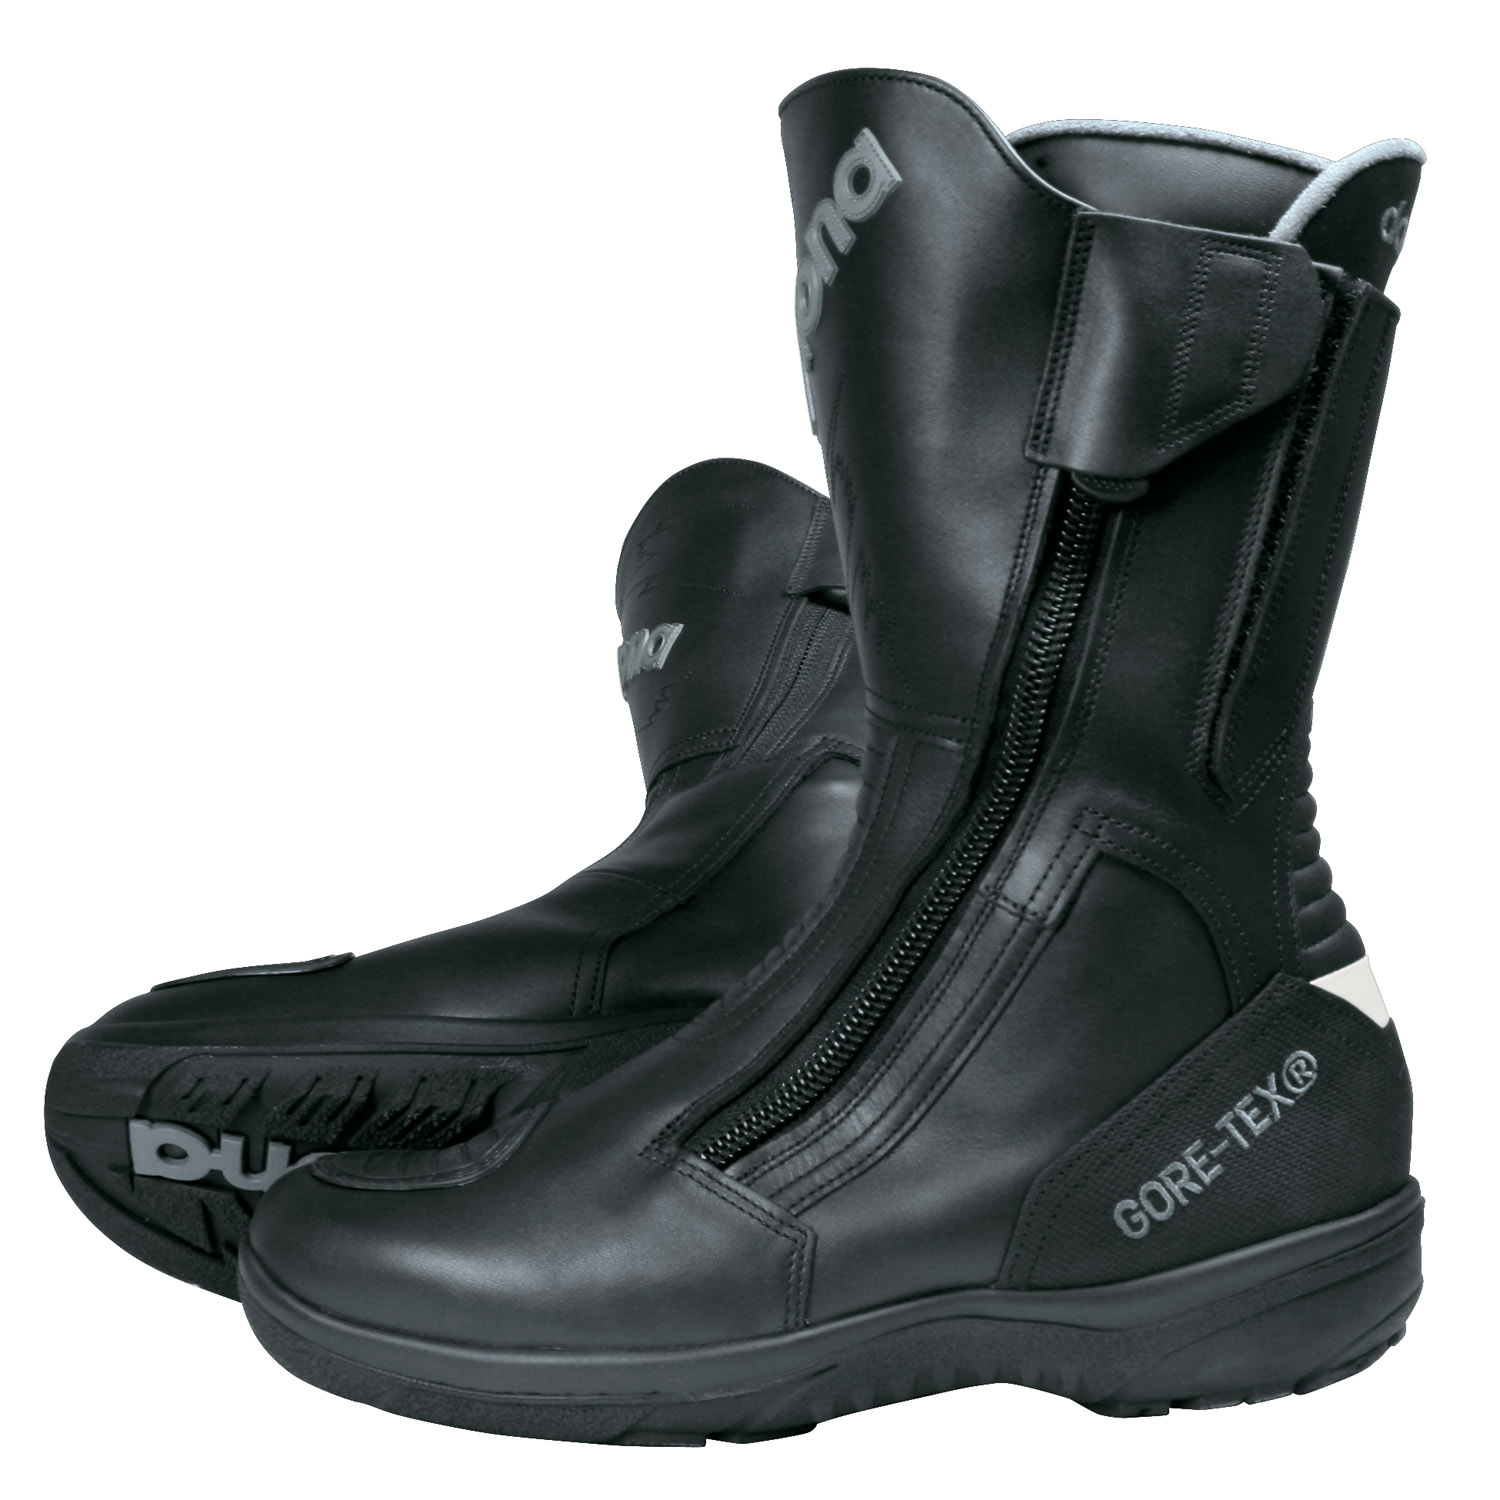 daytona road star gtx men 39 s motorcycle boots leather. Black Bedroom Furniture Sets. Home Design Ideas